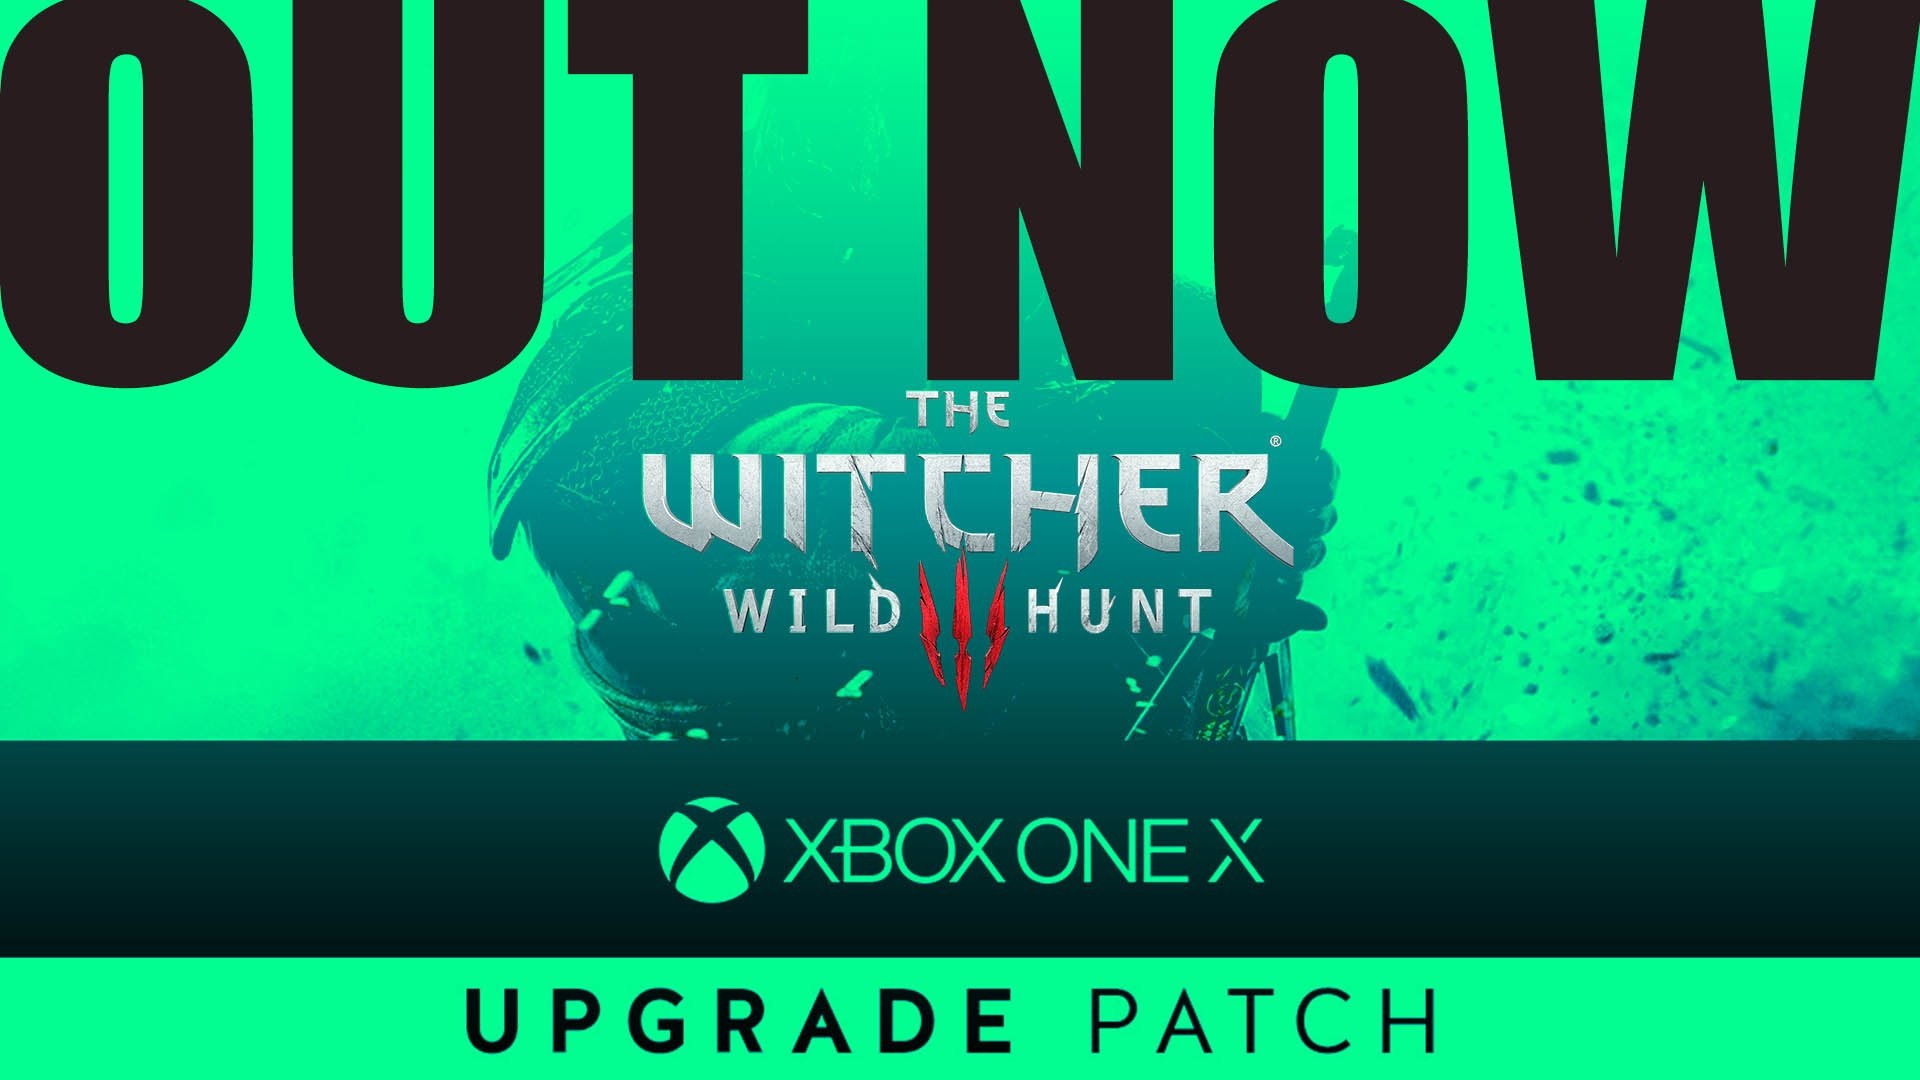 the-witcher-3-wild-hunt-xbox-one-x-upgrade-patch-4k-hdr-cd-projekt-red-action-adventure-rpg